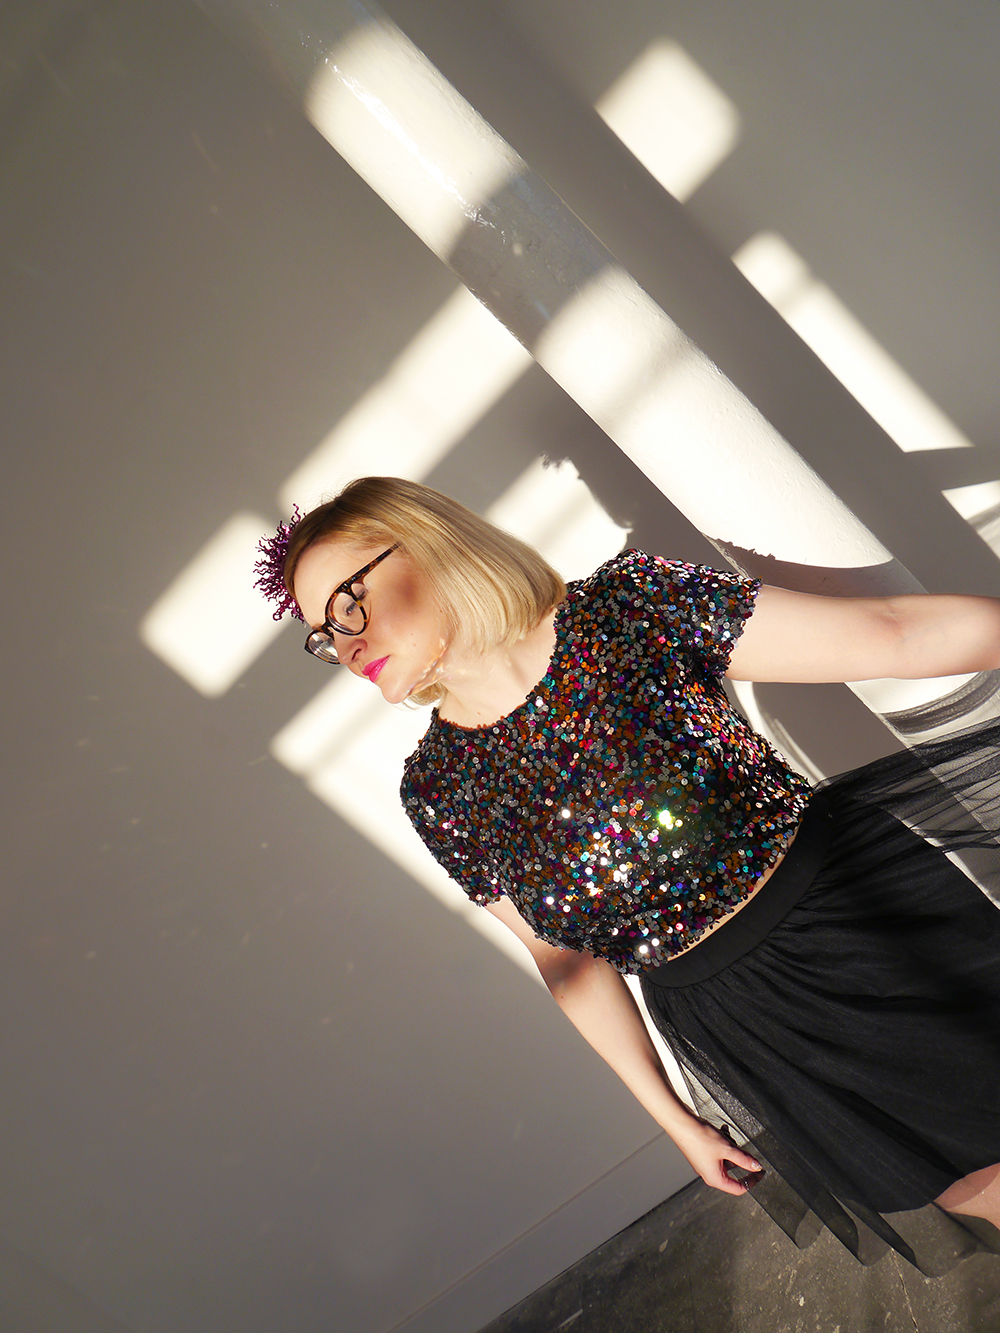 sequins, sparkly New Year outfit, how to wear sequins, glitter ball outfit, Christmas party, ballerina skirt, IOLLA Muir glasses, tinsel hair clip